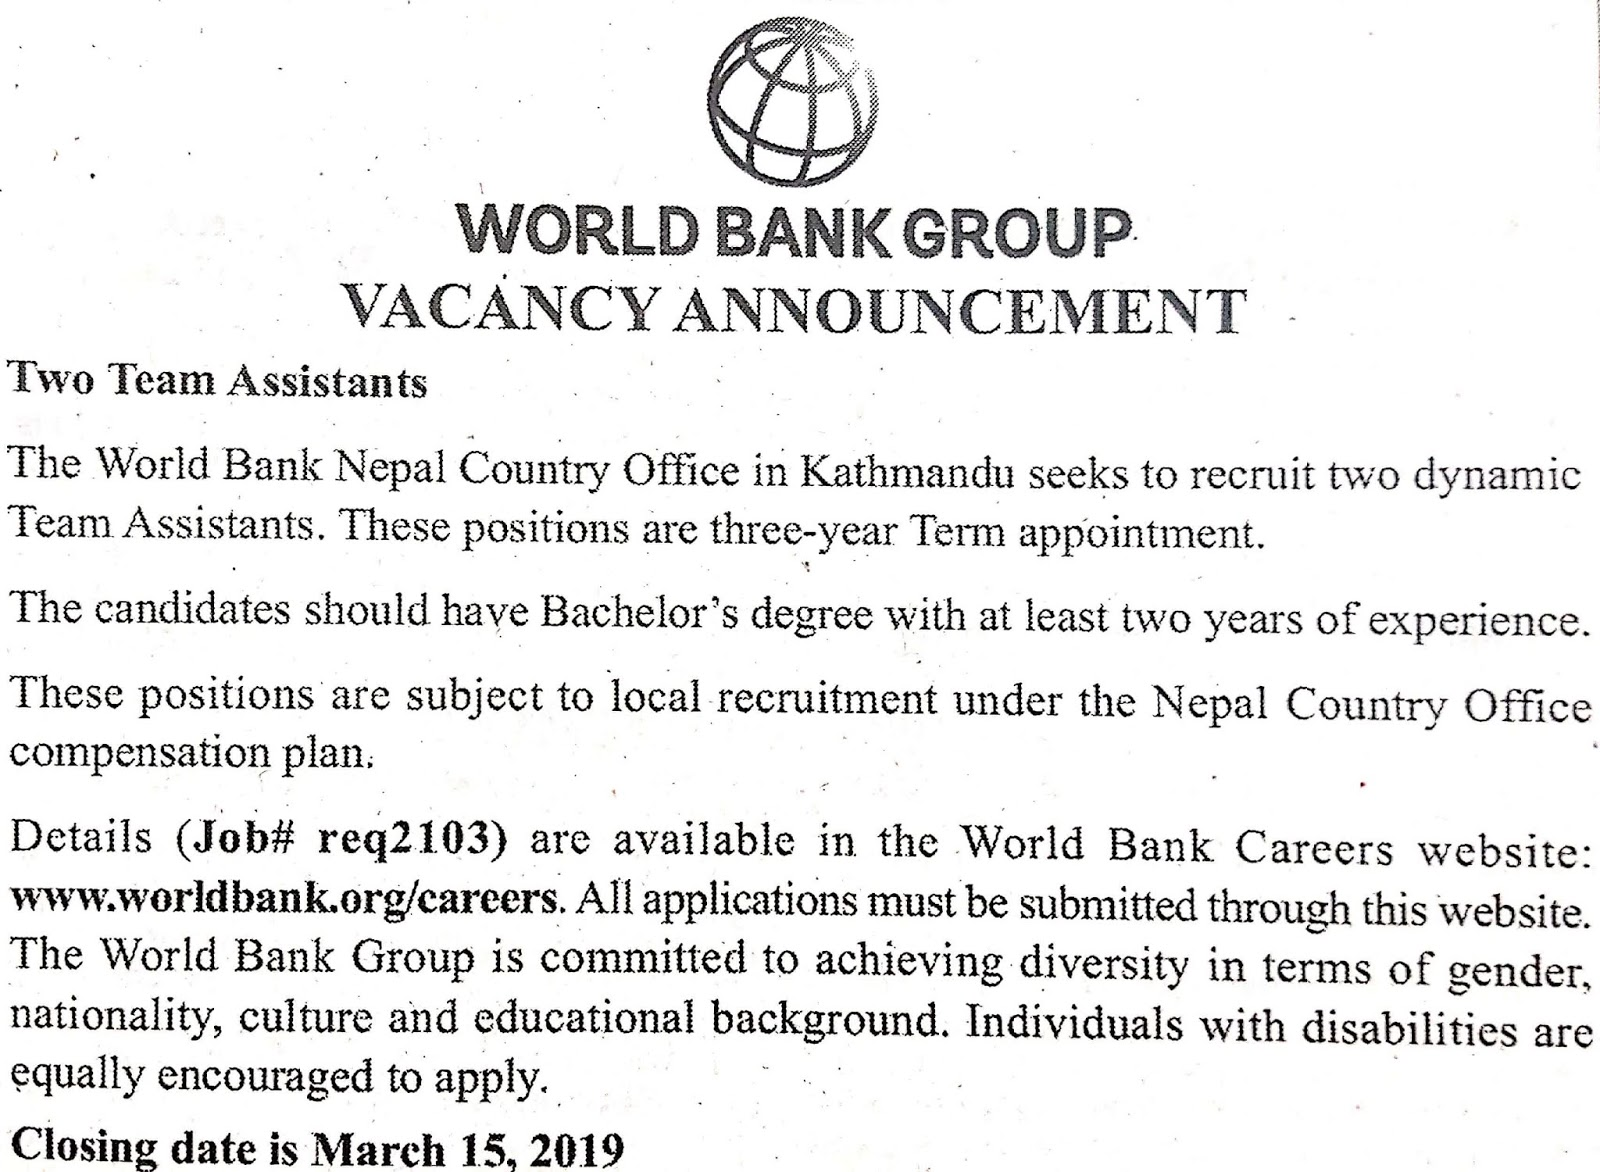 World Bank Group Vacancy Notice for Team Assistant.